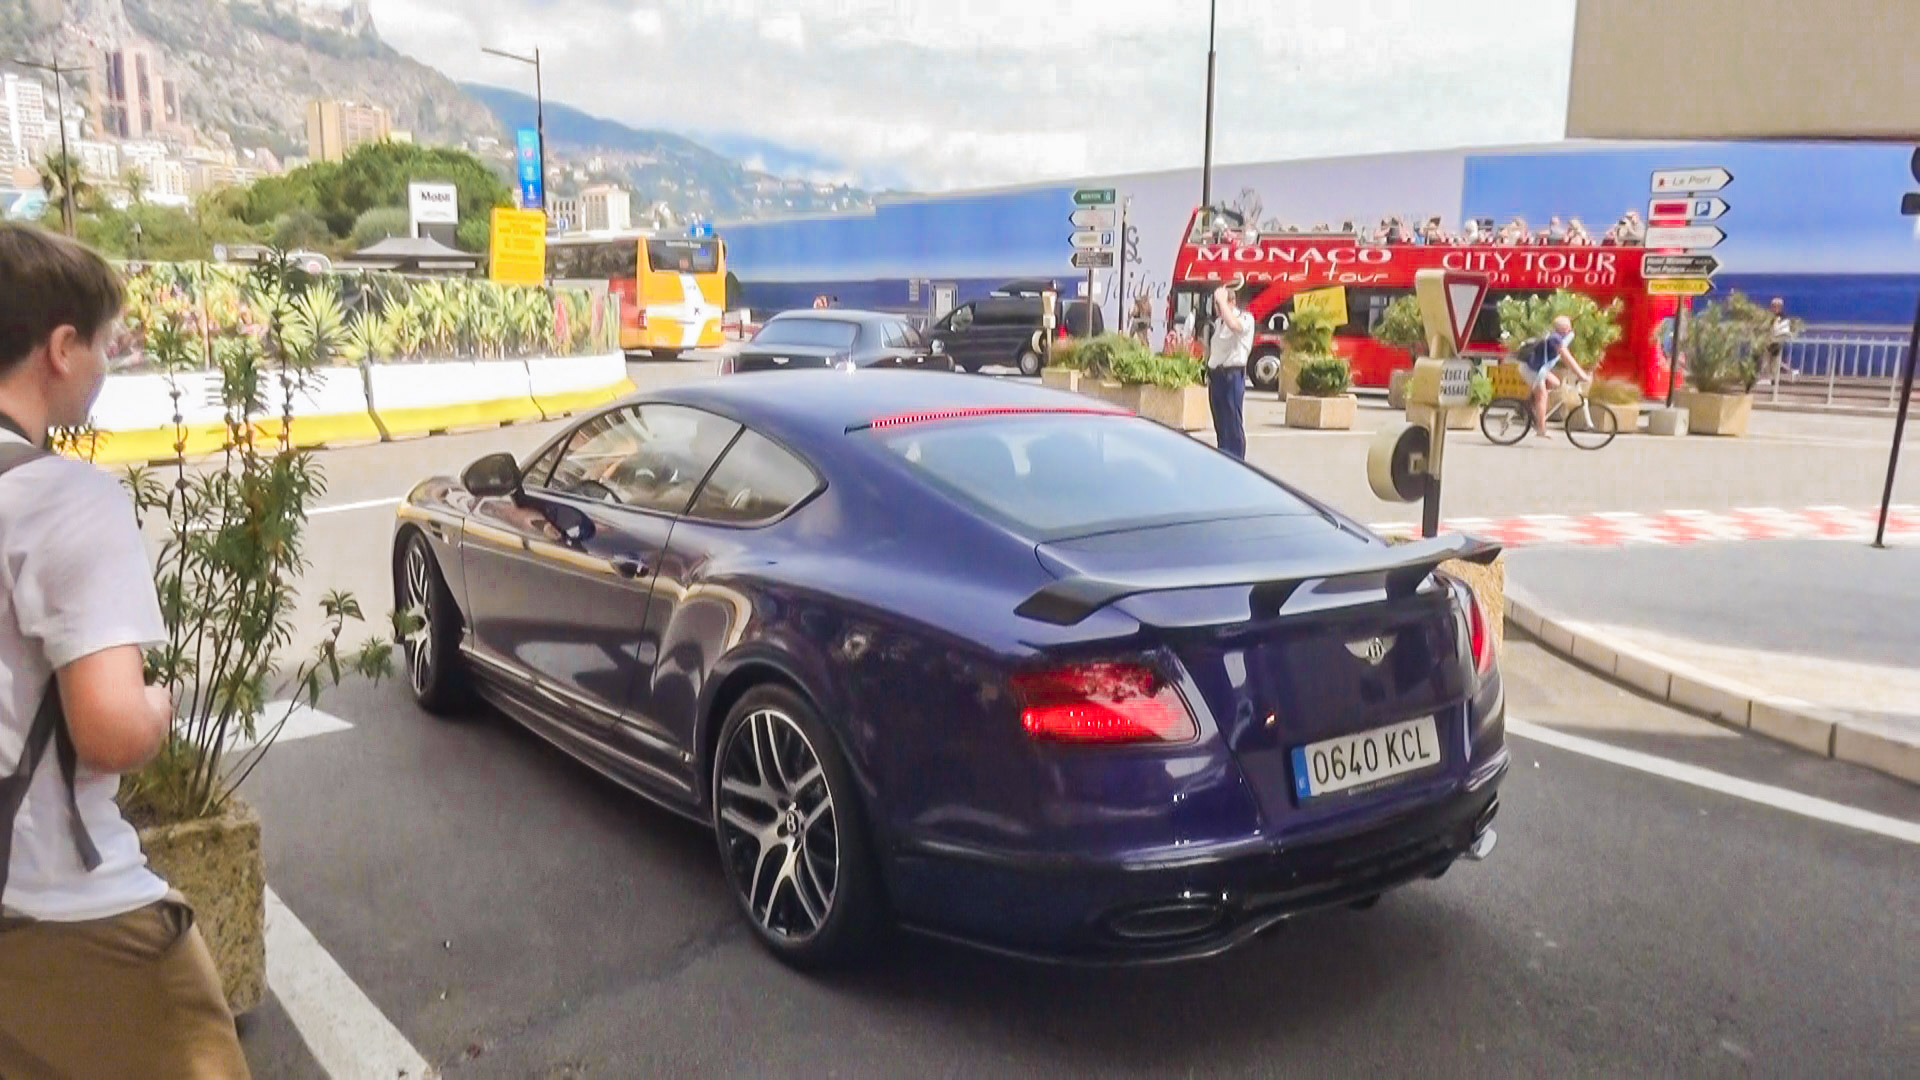 Bentley Continental GT Supersports - 0640-KCL (ESP)